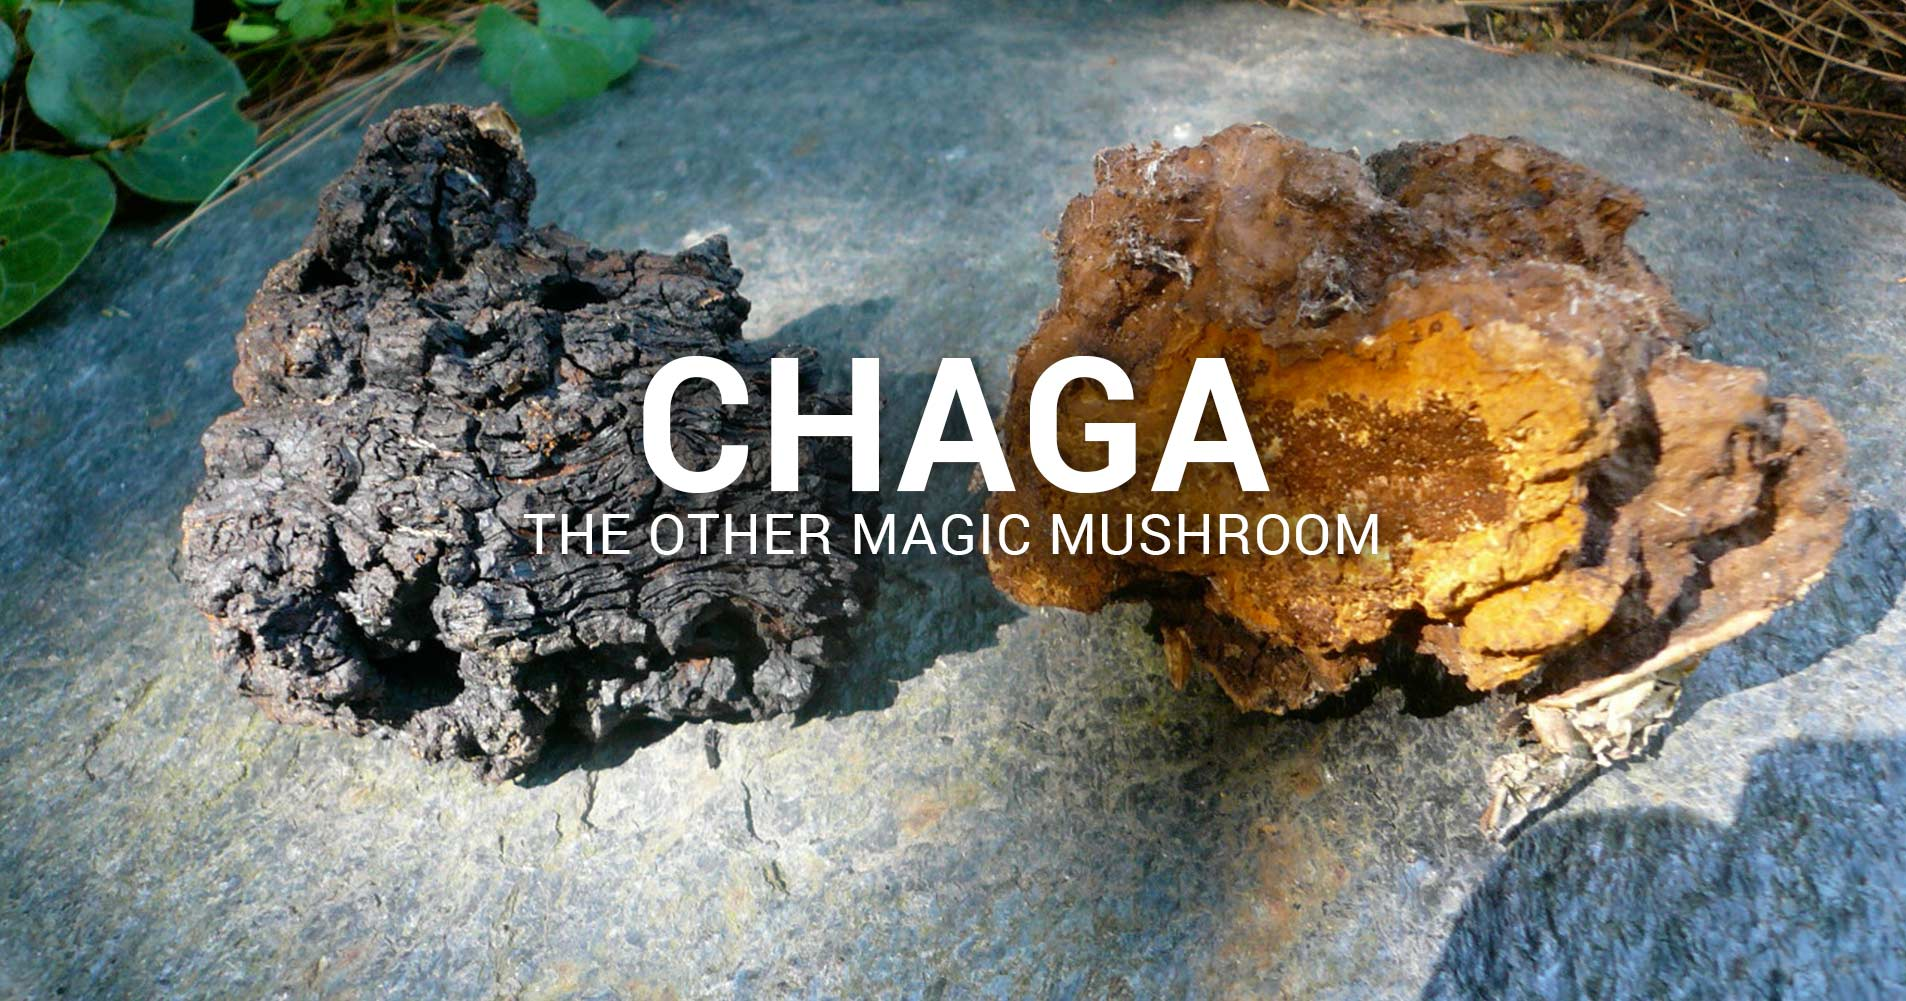 Chaga – The Other Magic Mushroom